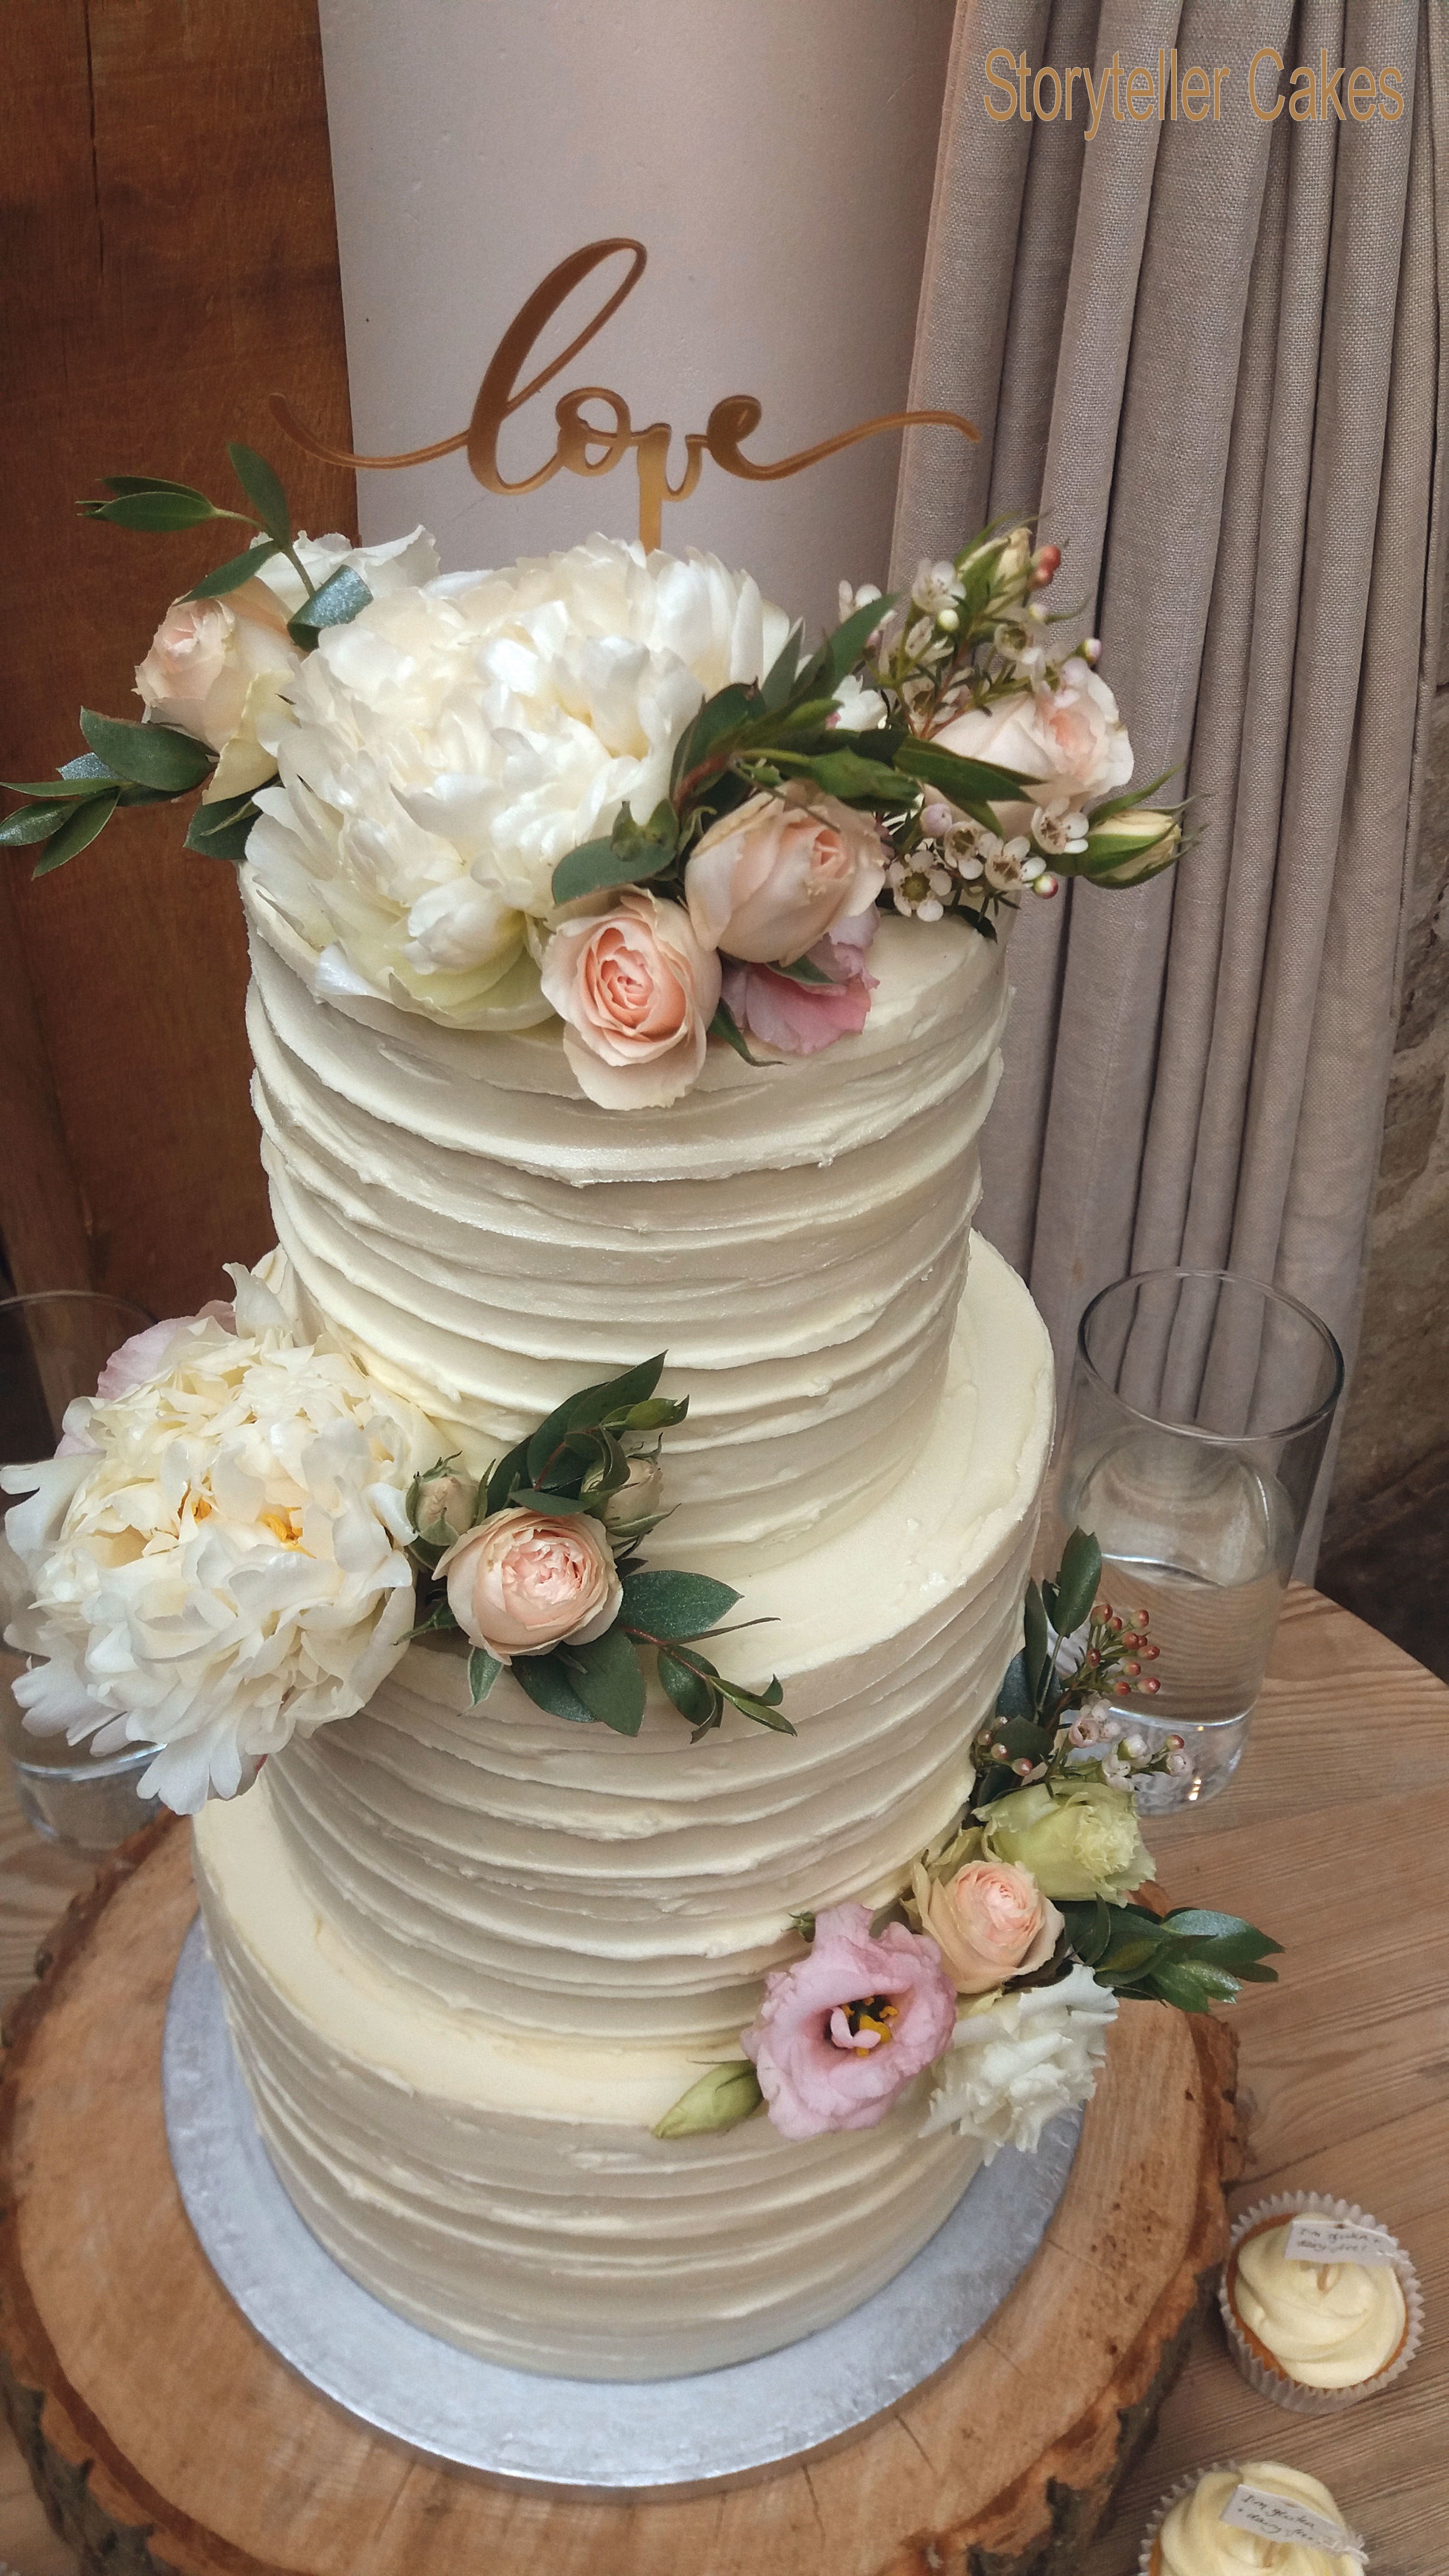 naked ruffle wedding cake 2.jpg